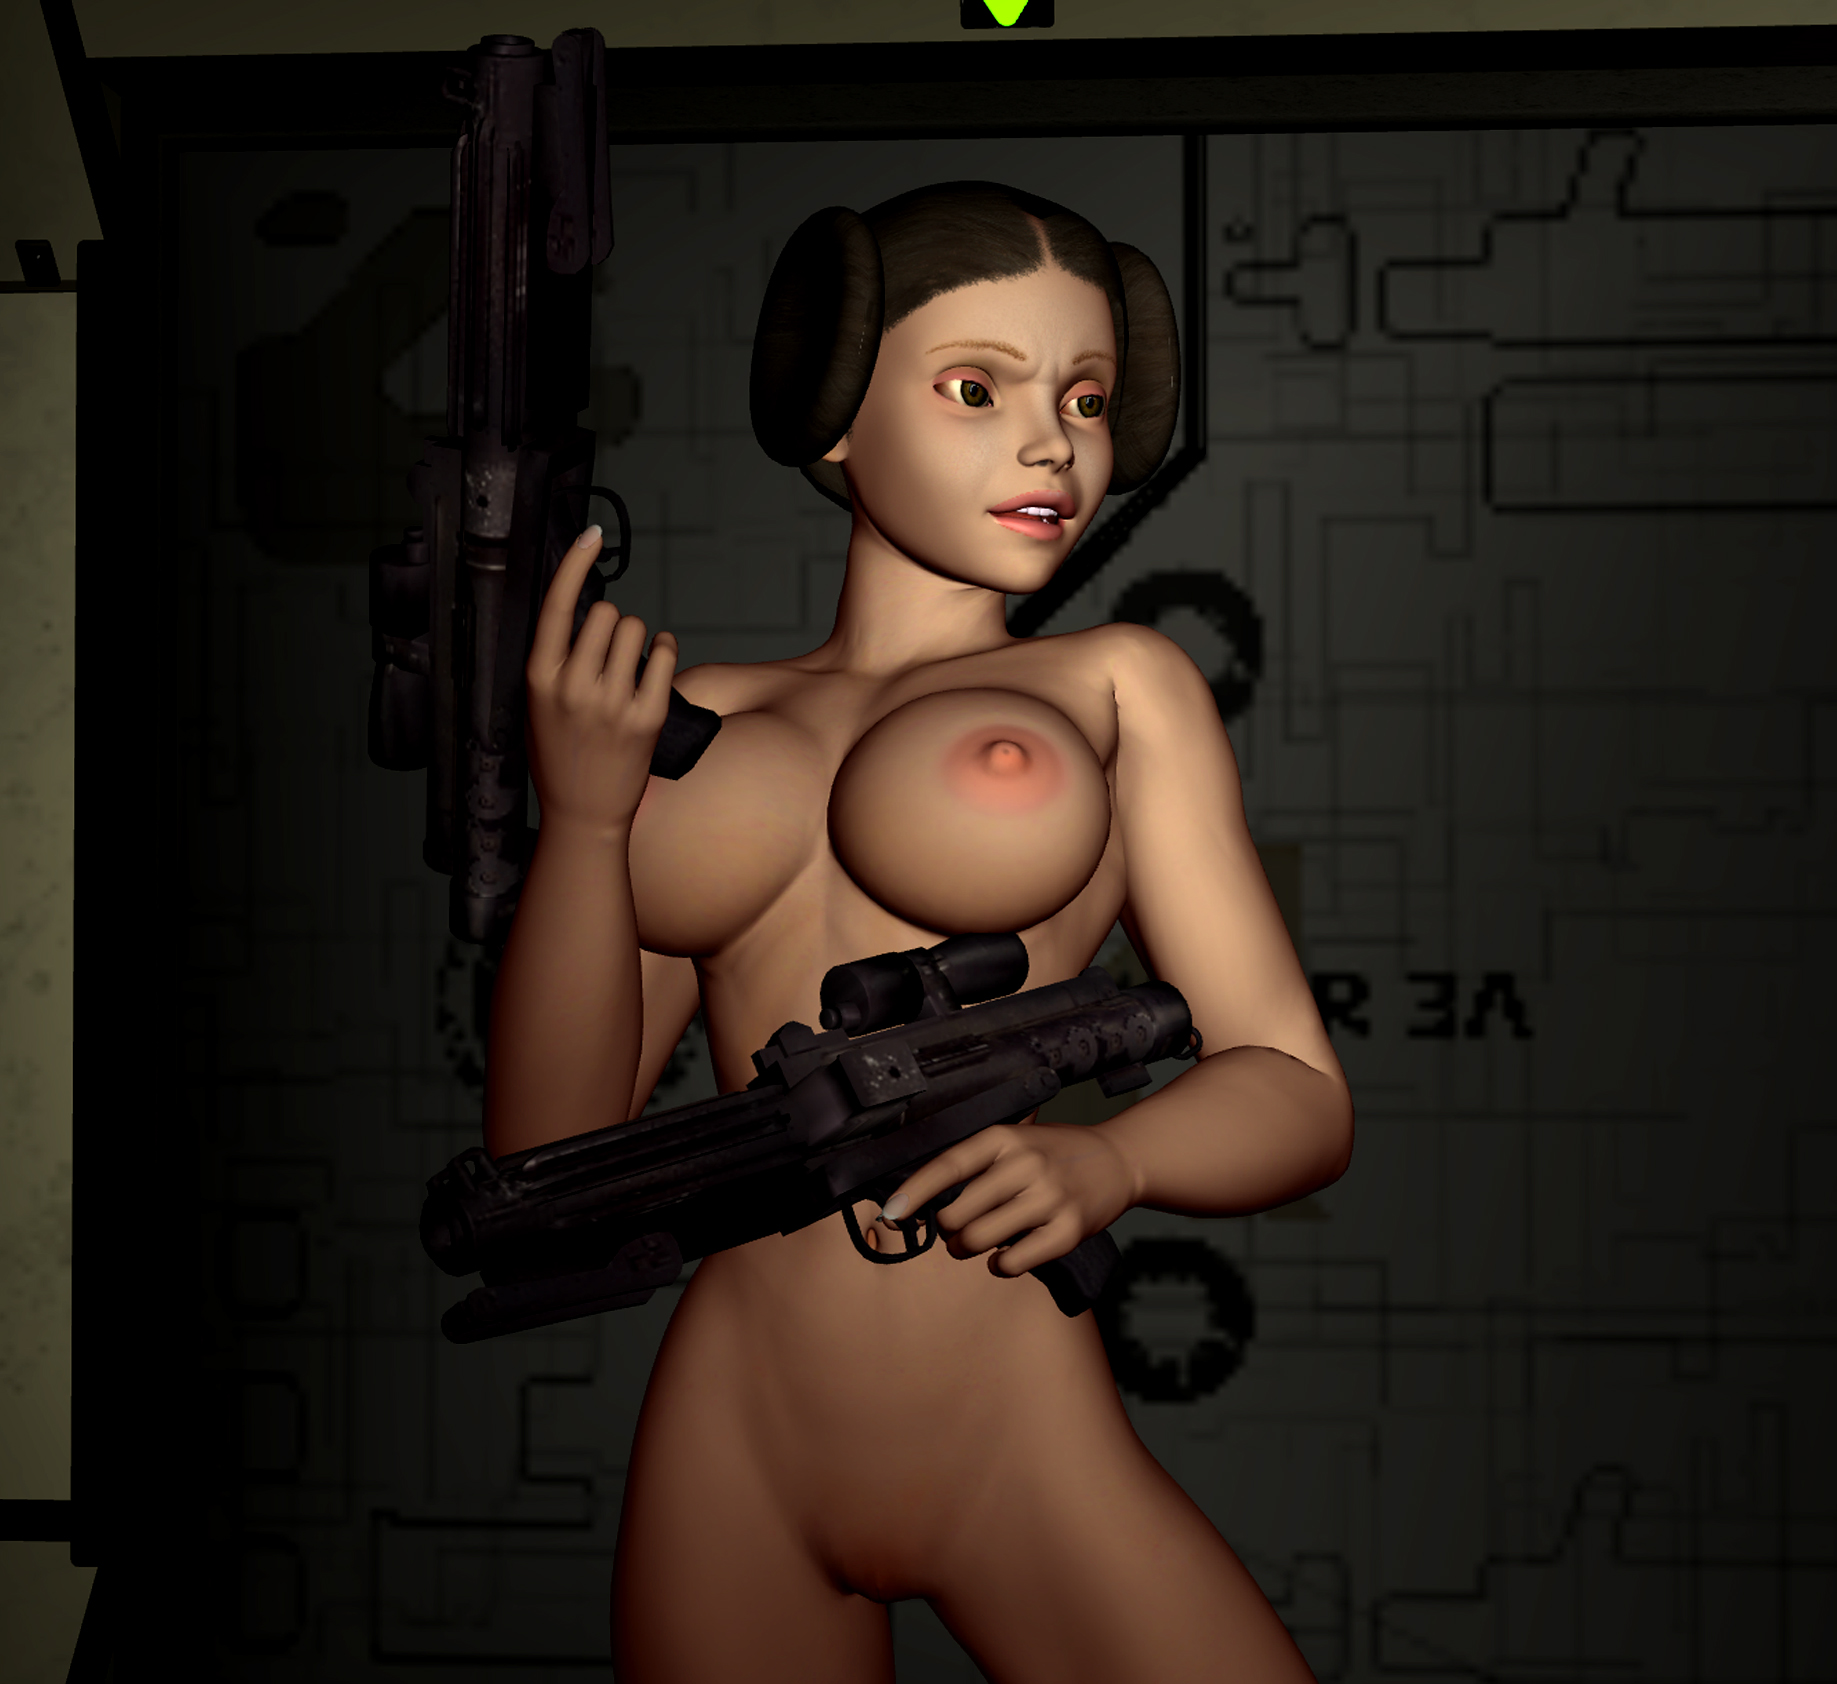 Princess leia porn naked photos